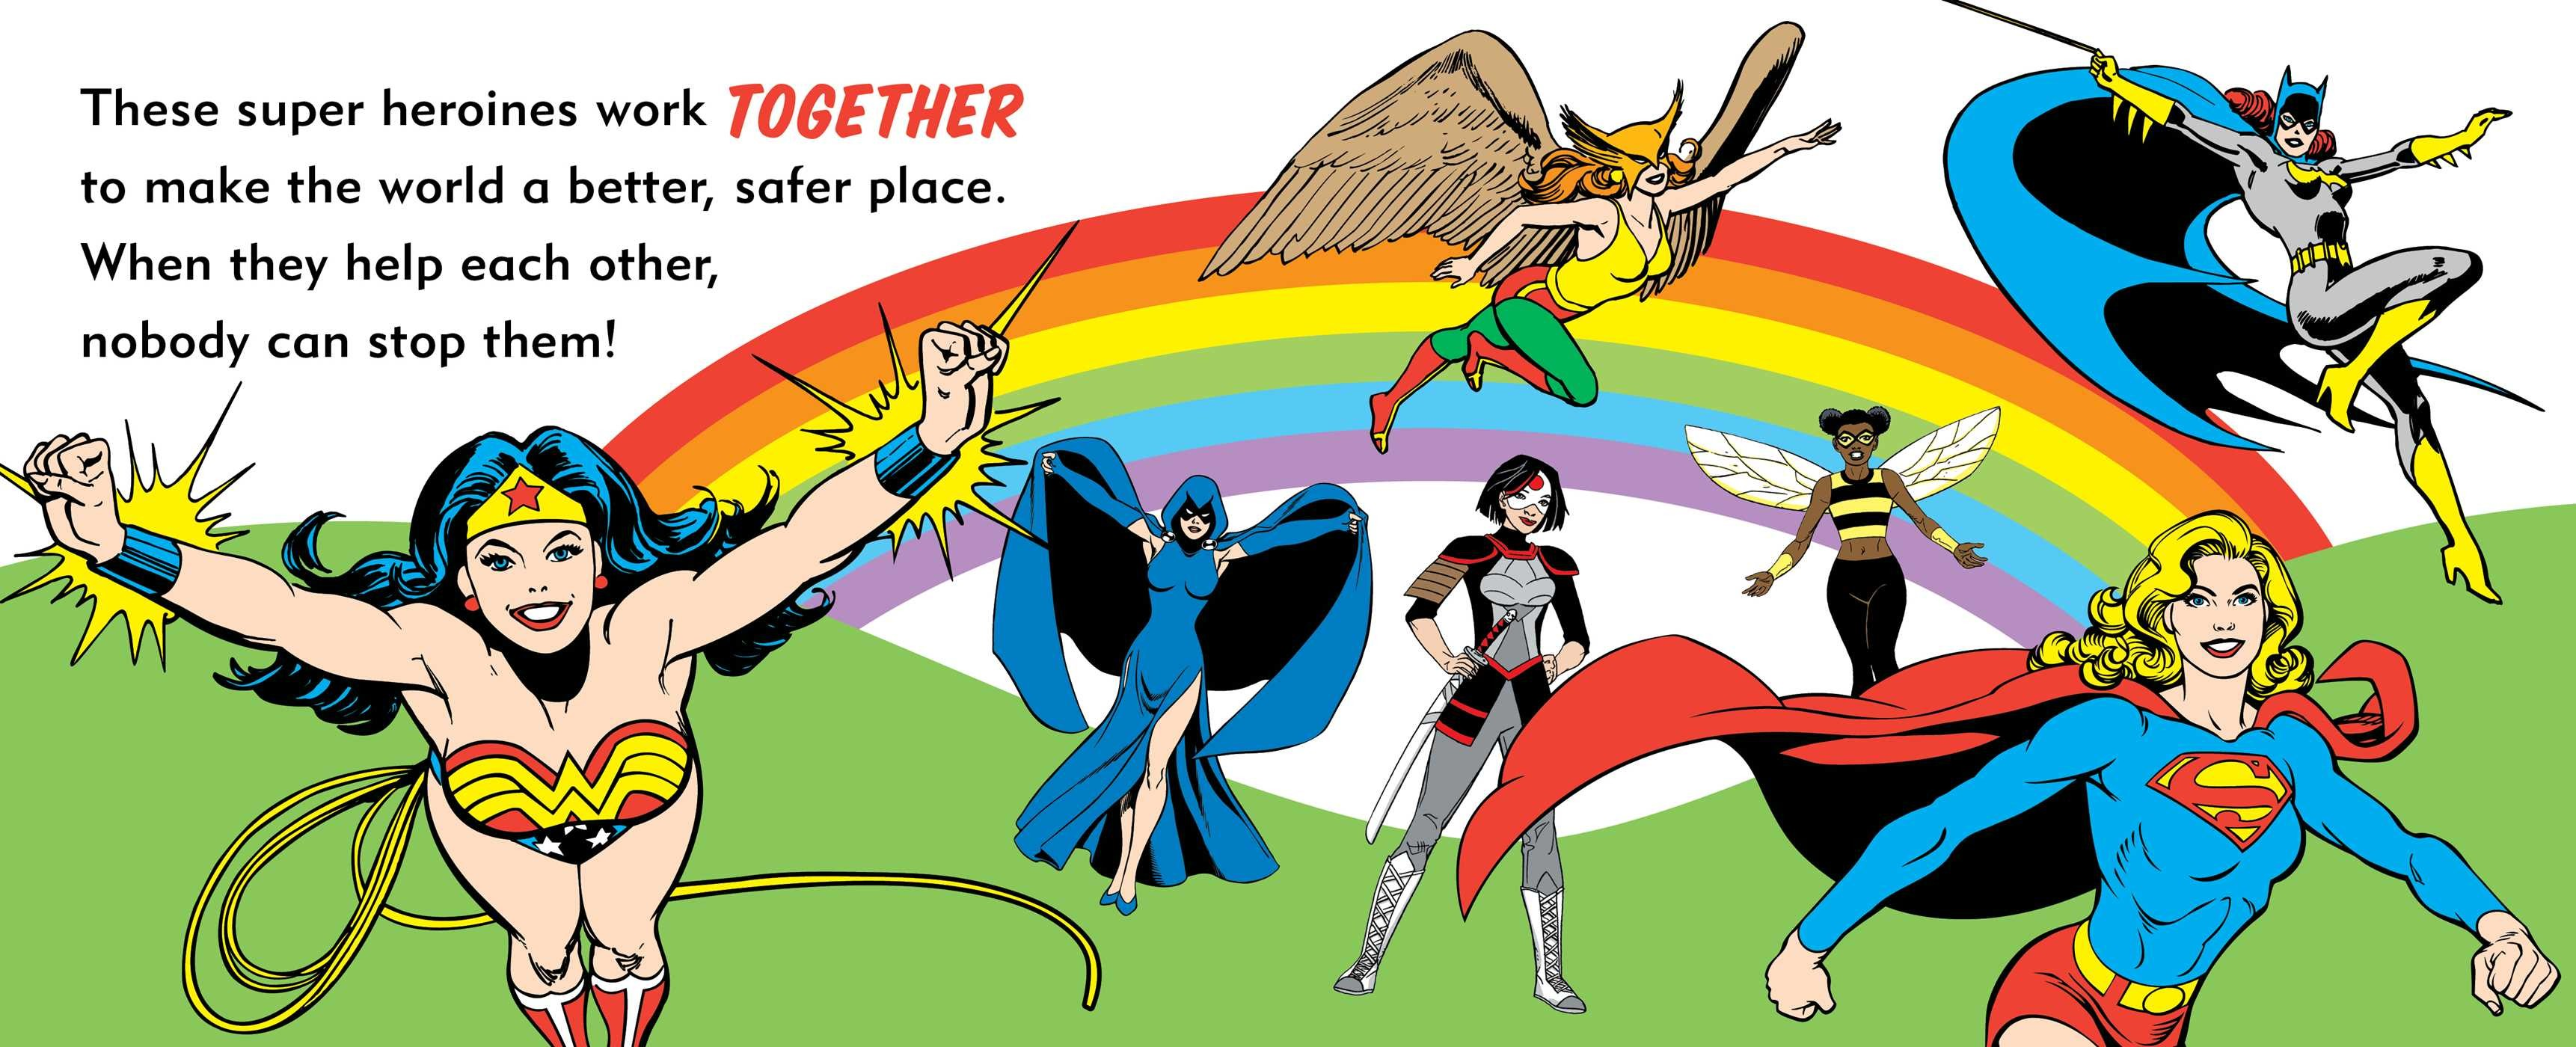 Dc super heroes my first book of girl power 9781941367032.in04